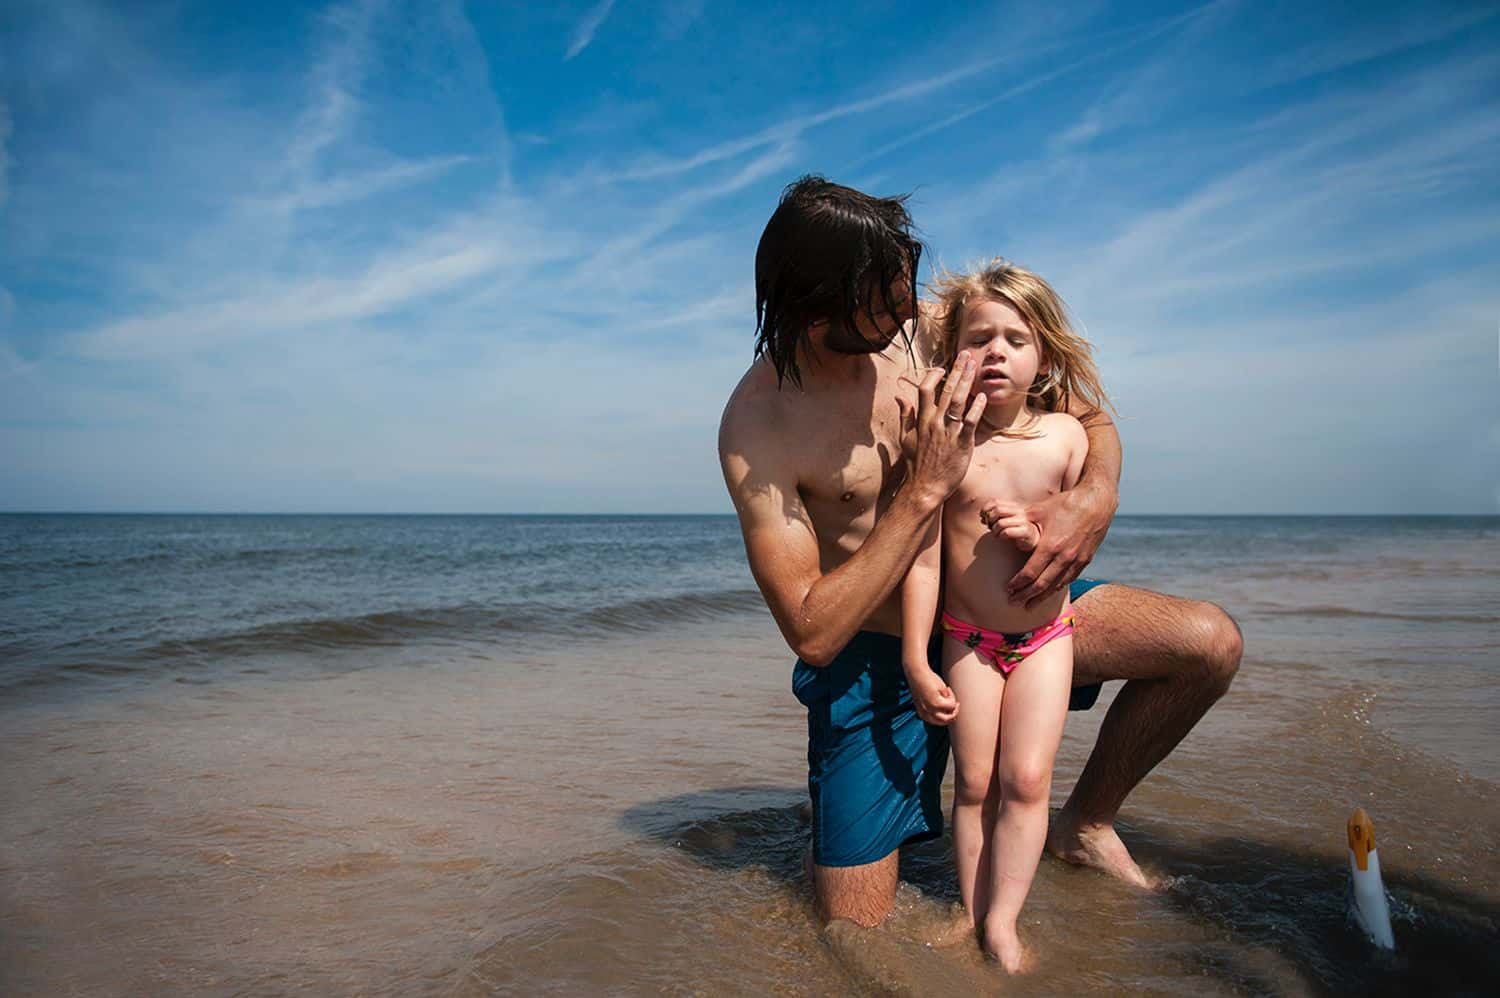 A dad wipes sunscreen on his little girl's face at the lake water's edge